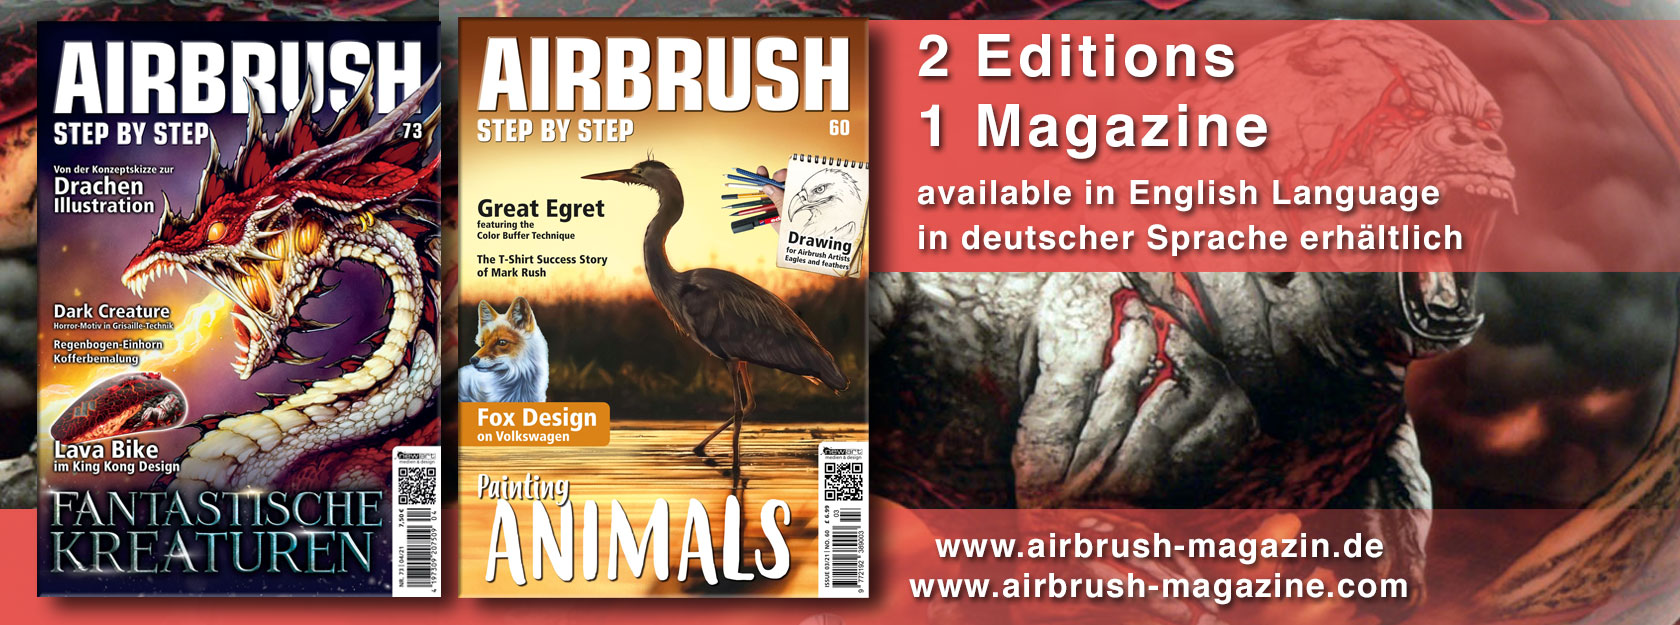 Two editions of Airbrush Step by Step magazine: How does it work?